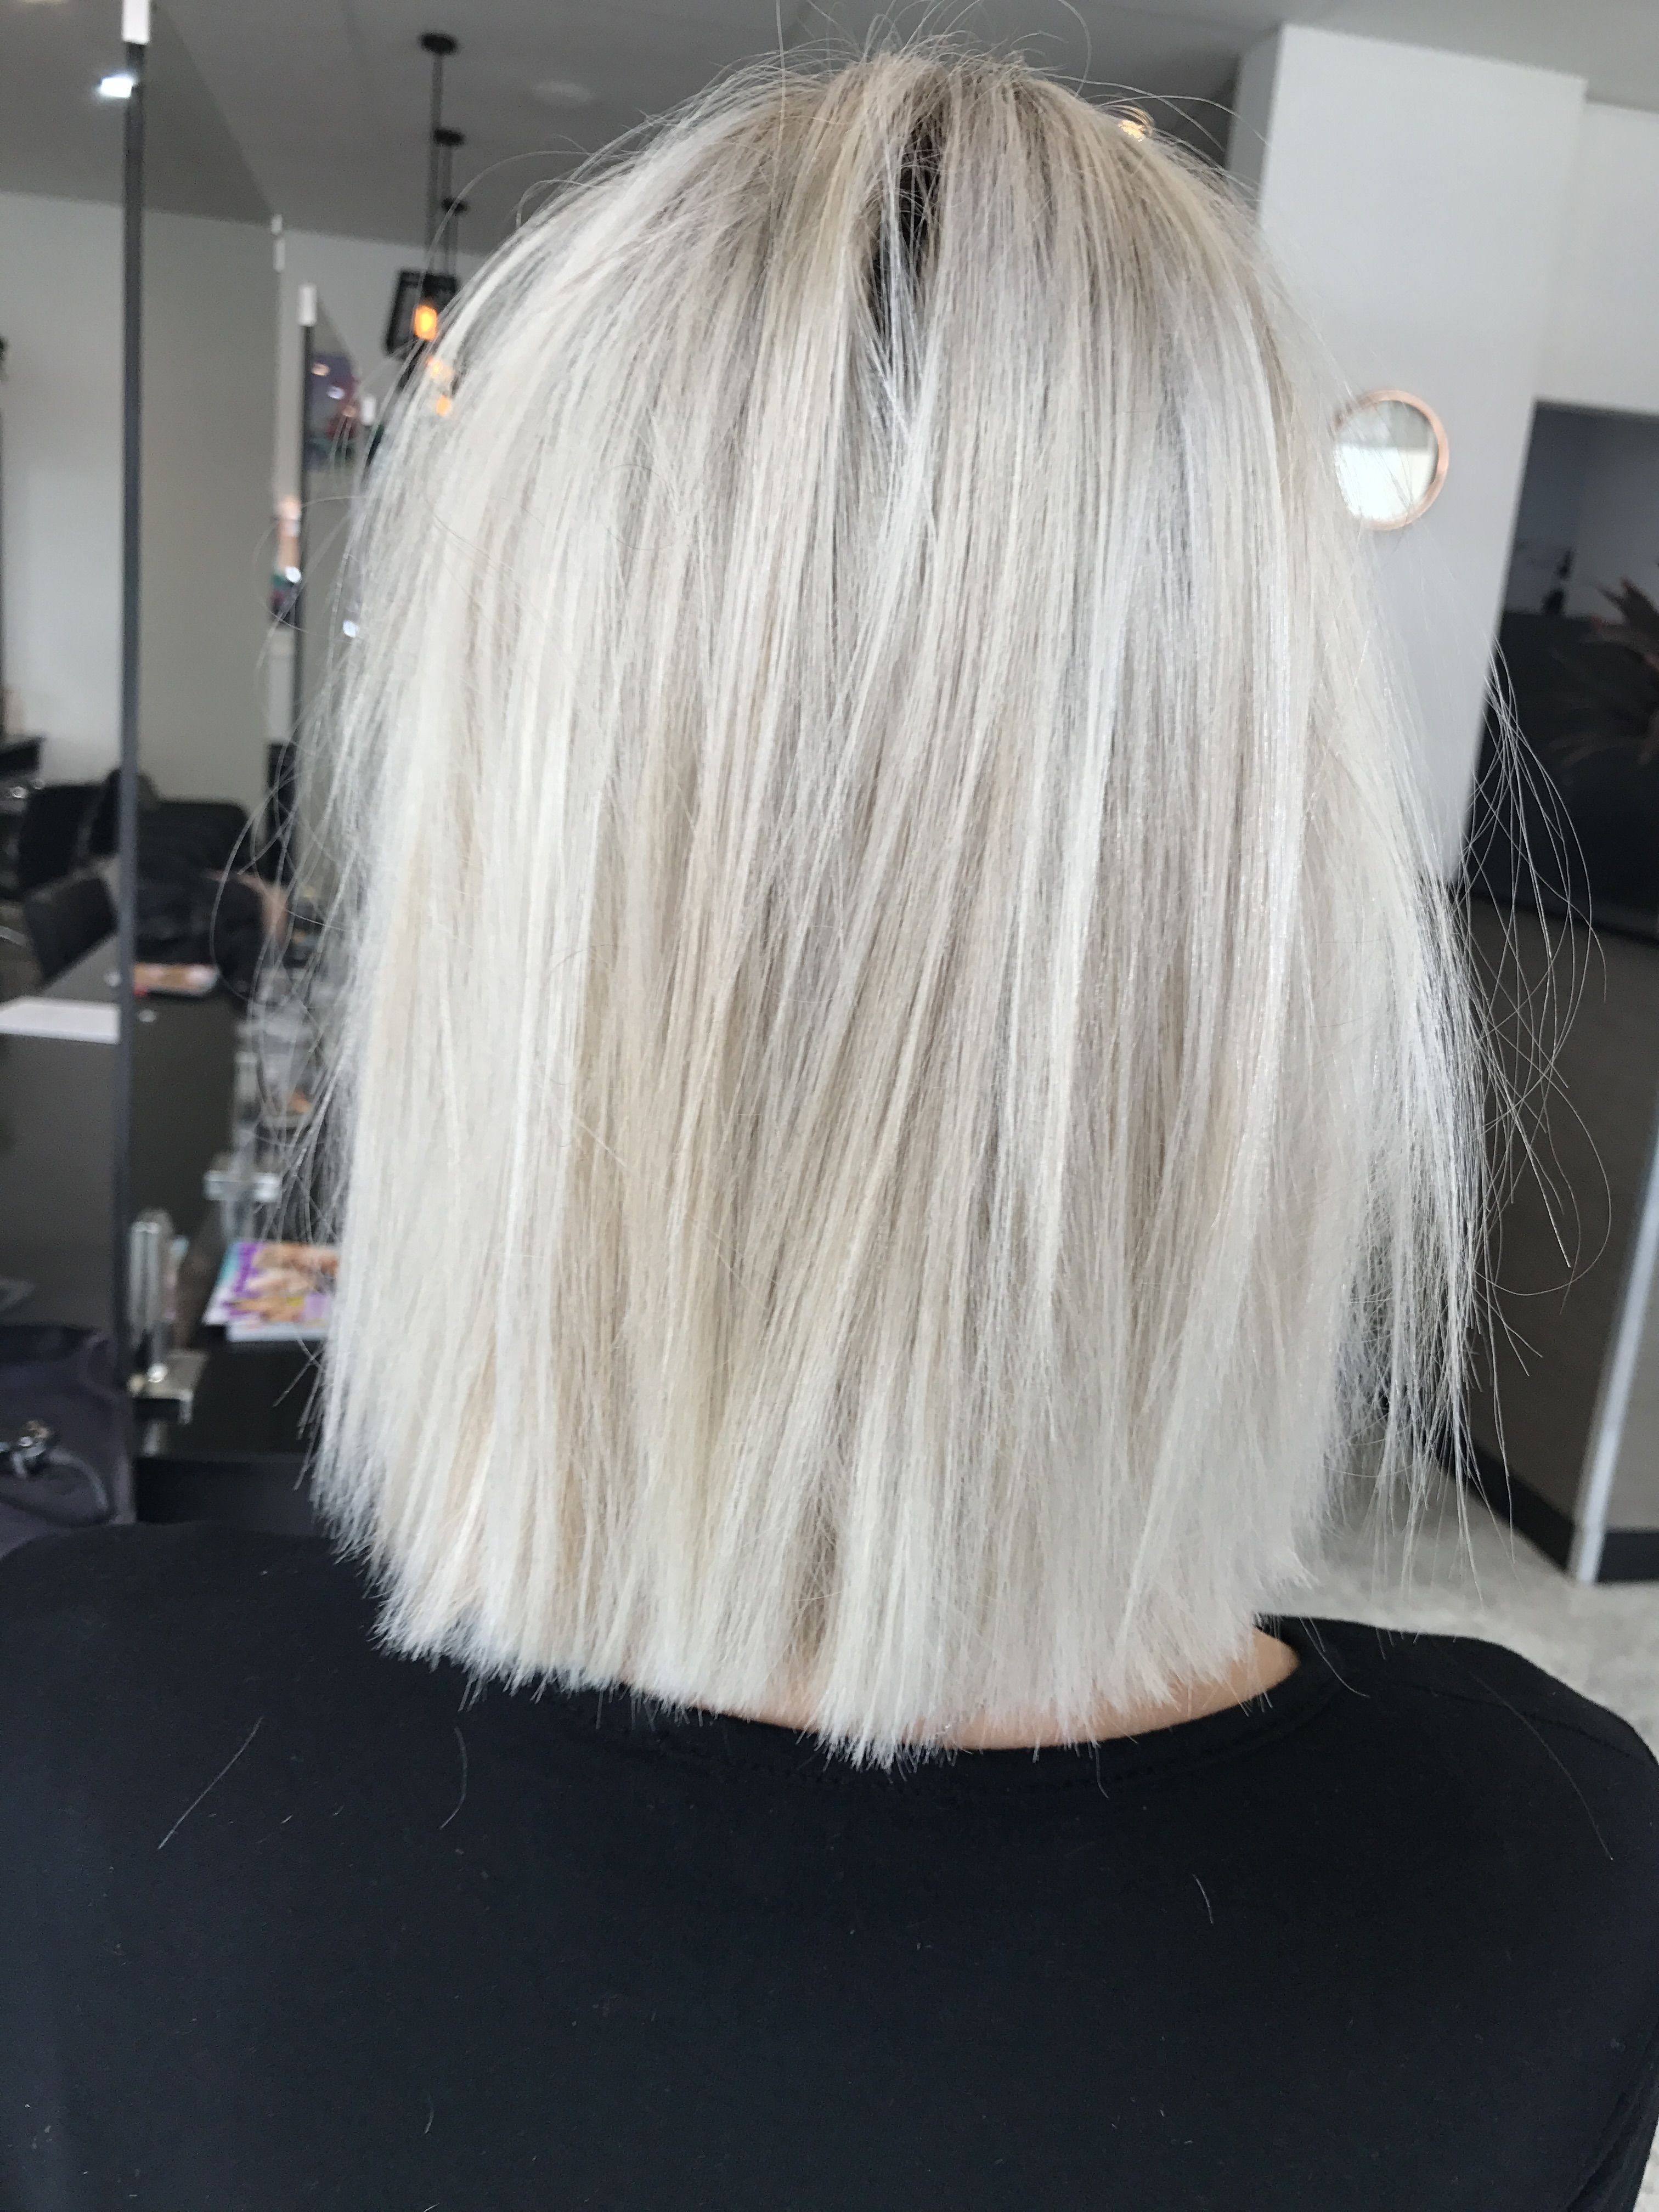 Current Long Blonde Bob Hairstyles In Silver White In Blonde Hair Short Lob Textured Straight Hair Cut Colour Cool Ash (View 6 of 20)